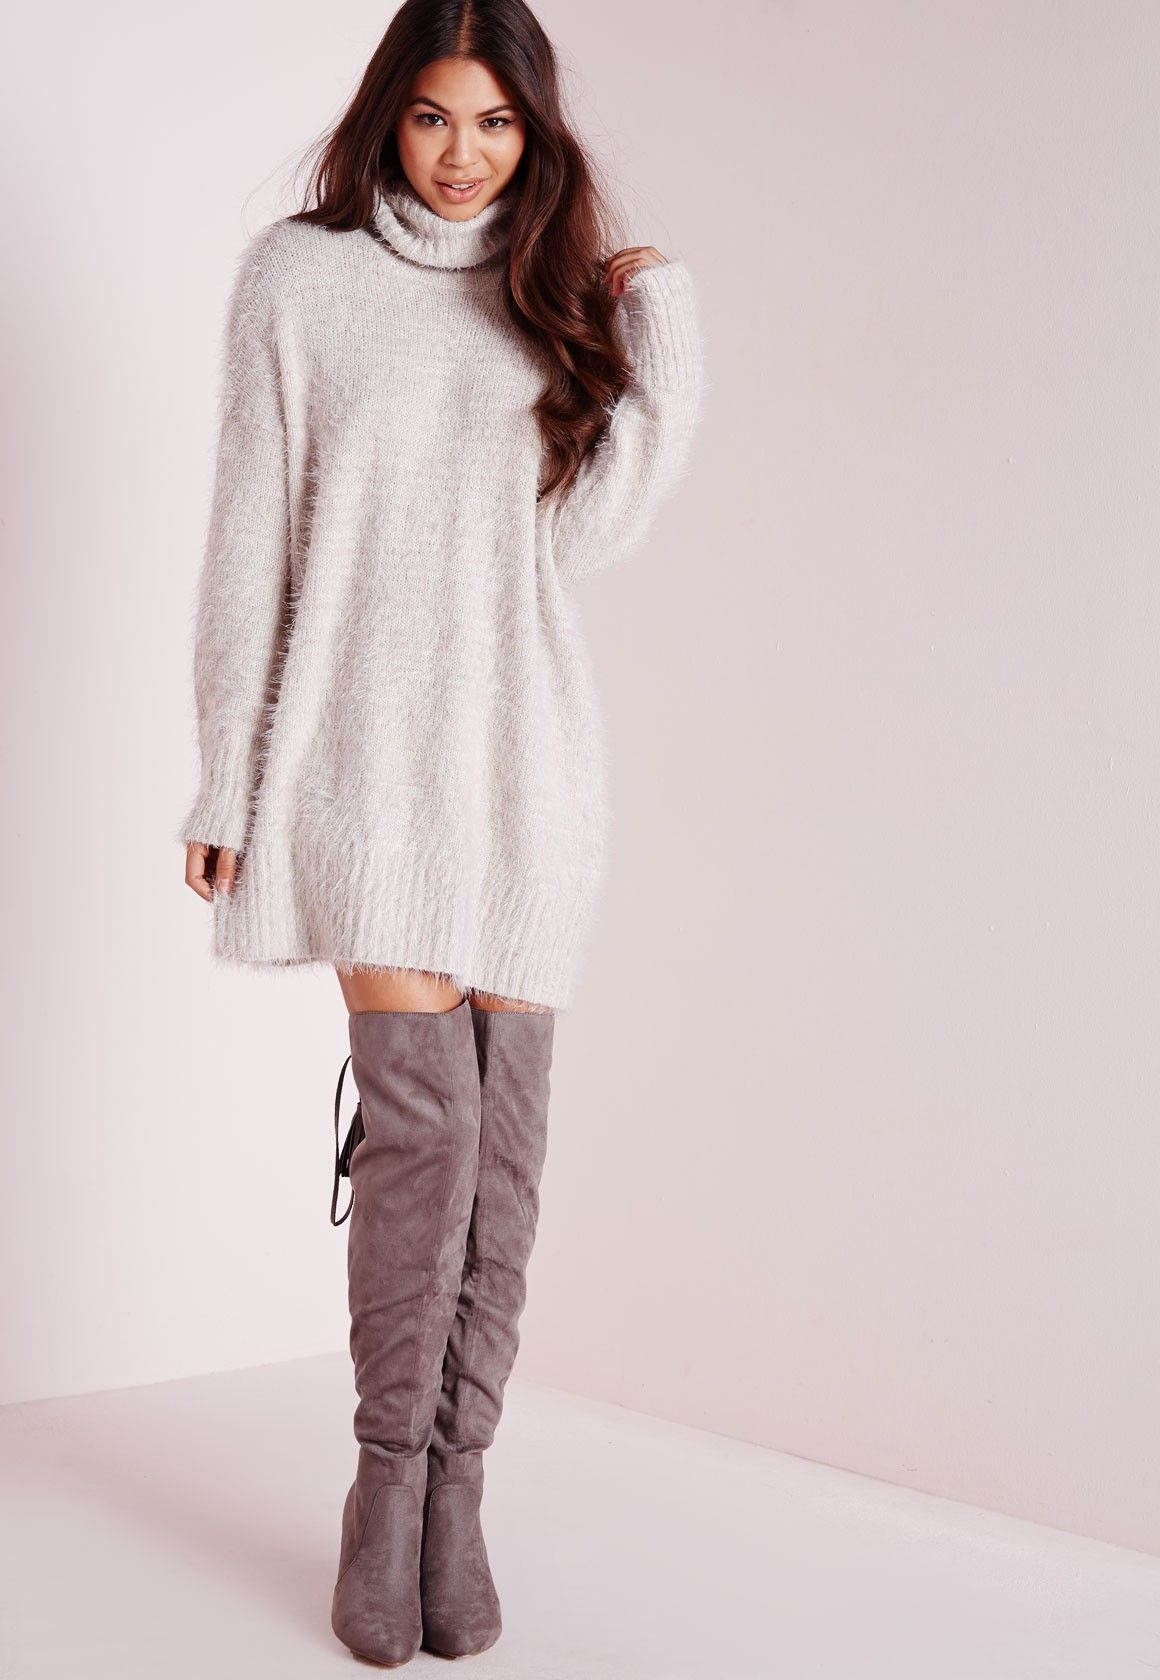 Missguided - Petite Fluffy Roll Neck Jumper Dress Grey | Current ...